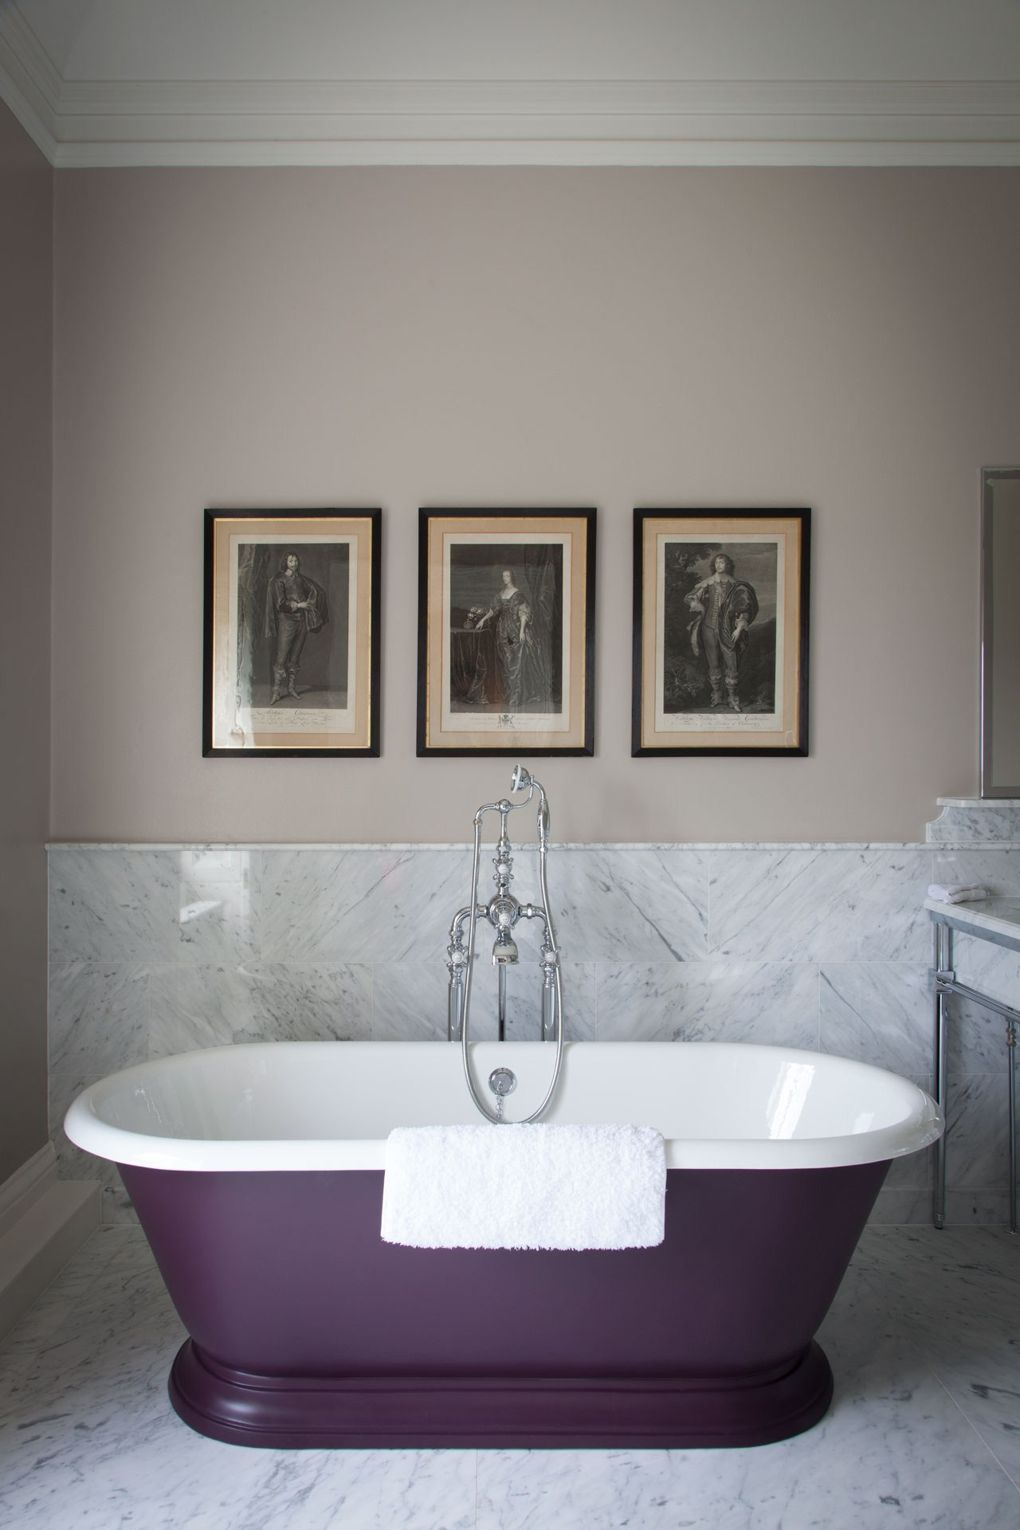 Purple Claw Foot Bathtub Marble Floors Cliveden House Hotel England